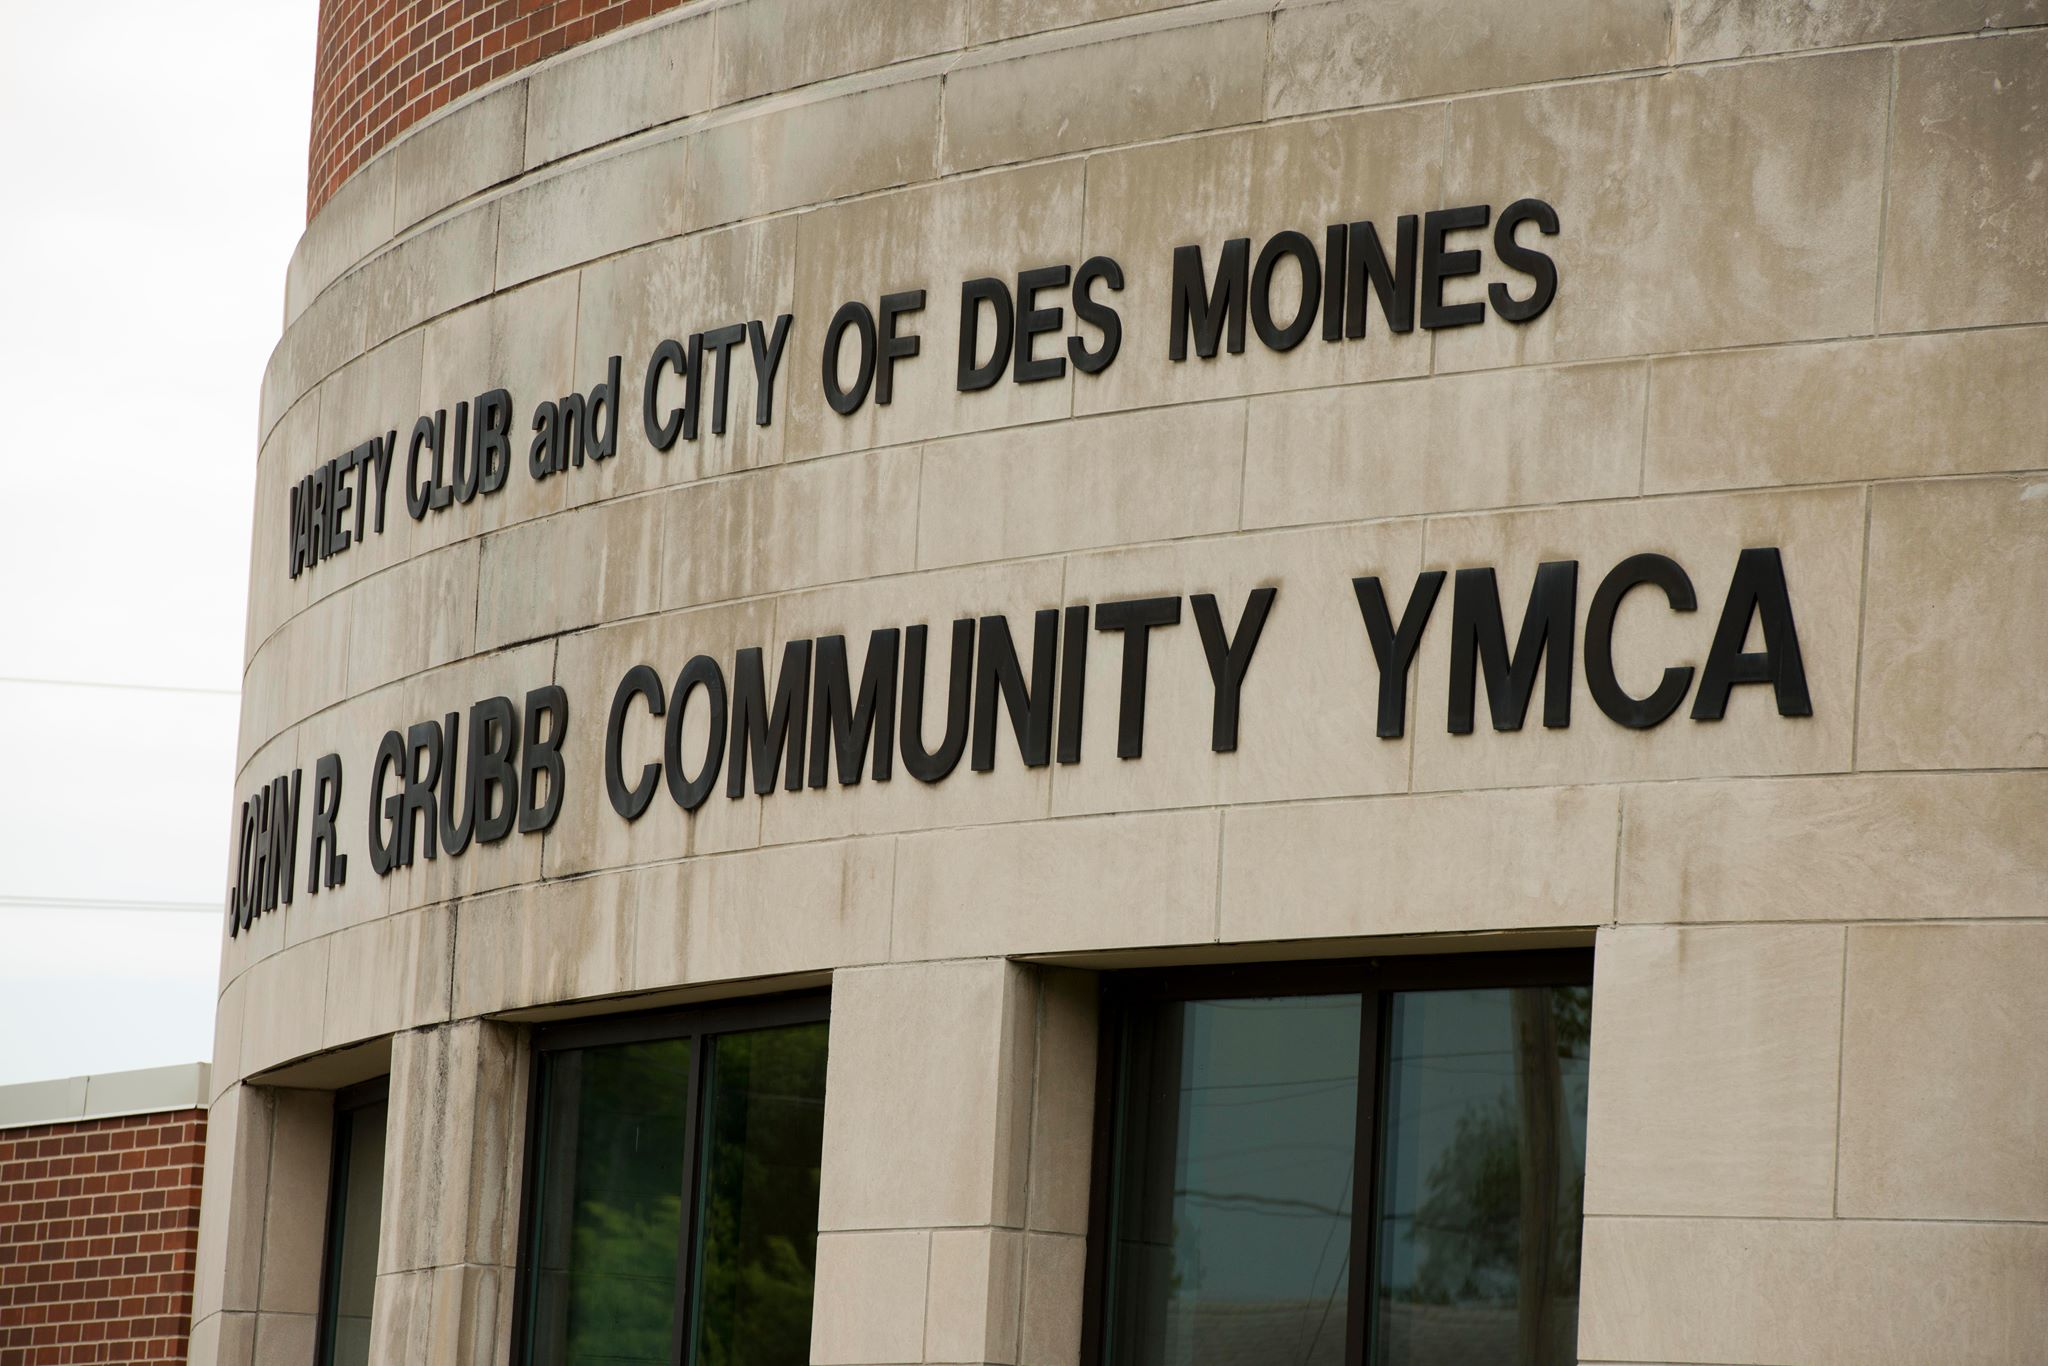 johnrgrubbcommunity-ymca-iowa